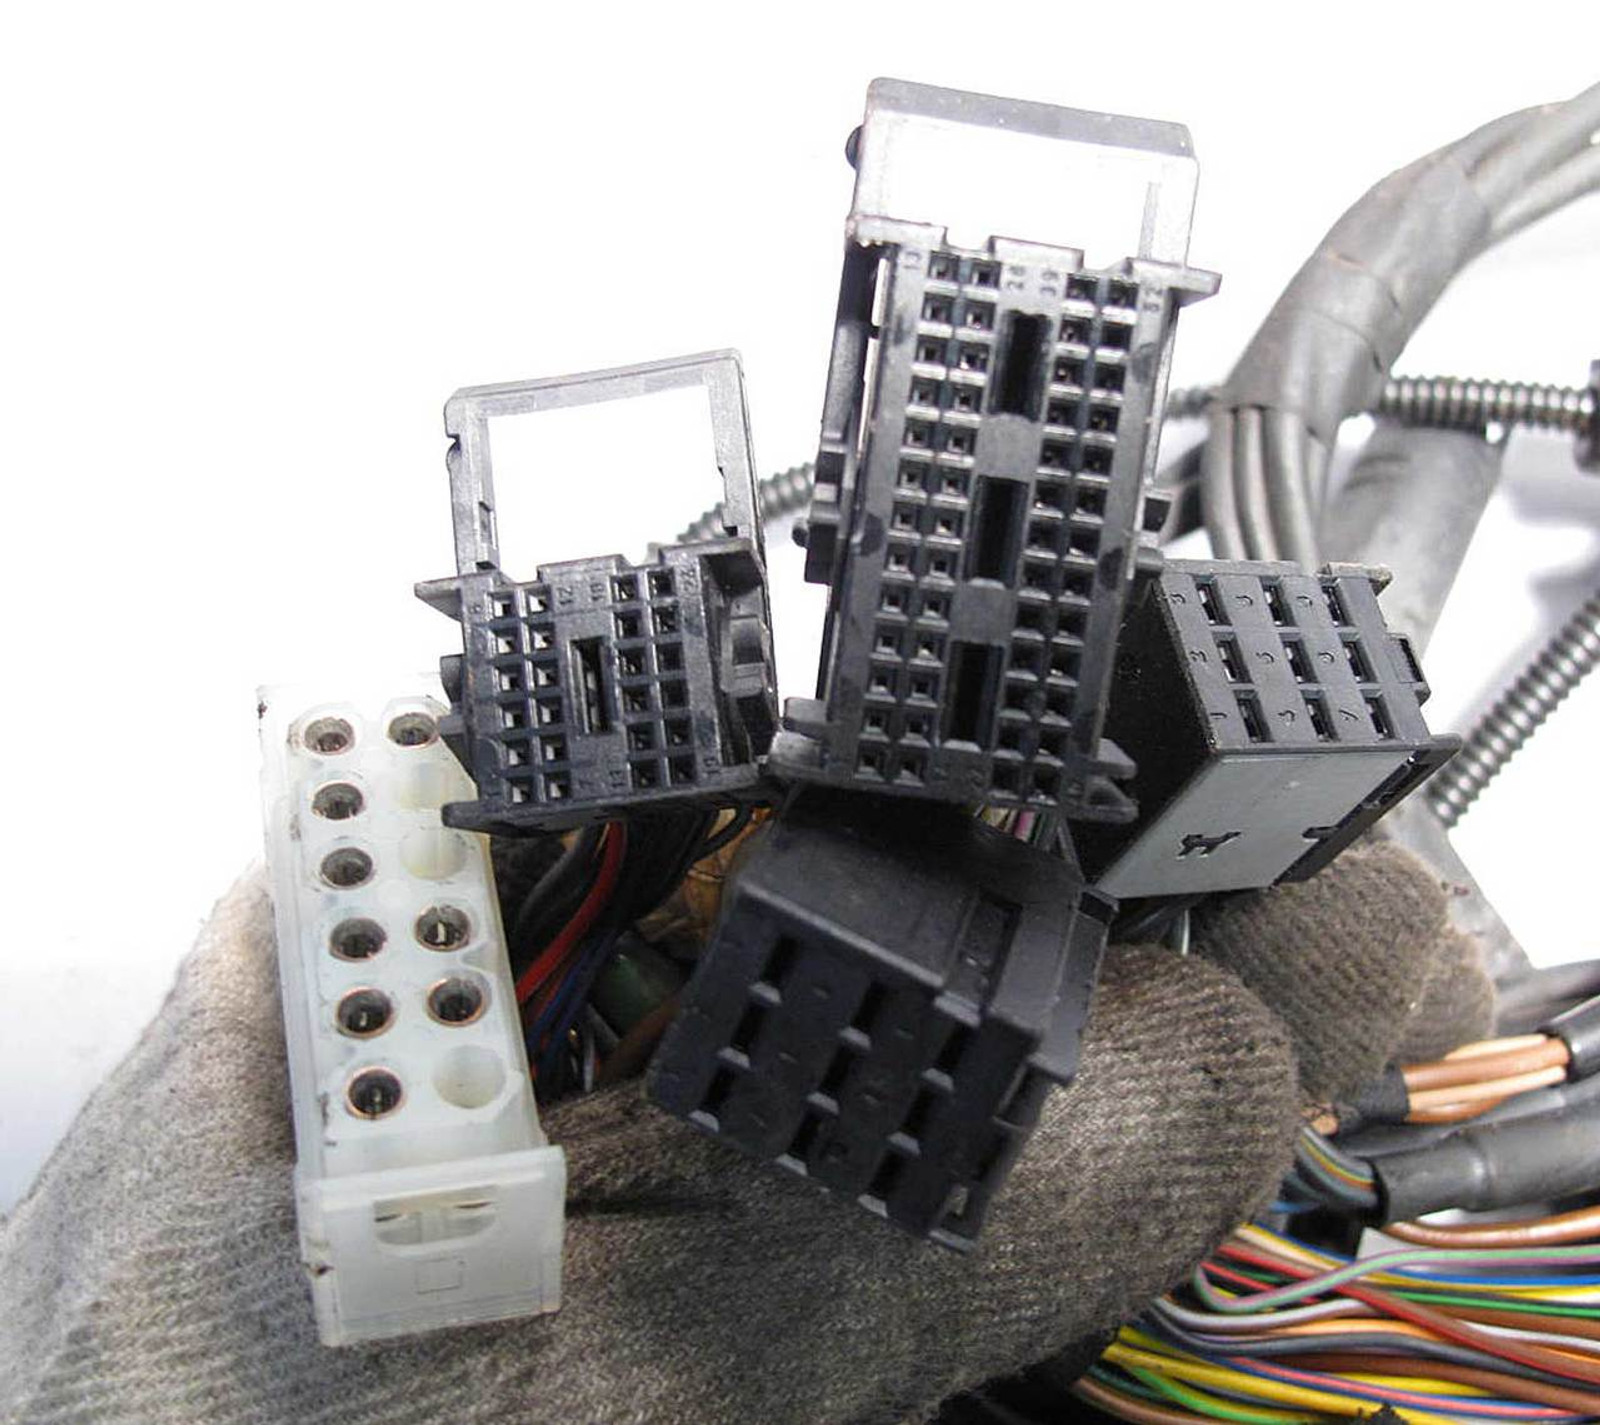 2000 Bmw E39 M5 M S62 Engine Wiring Electrical Harness Complete Wire